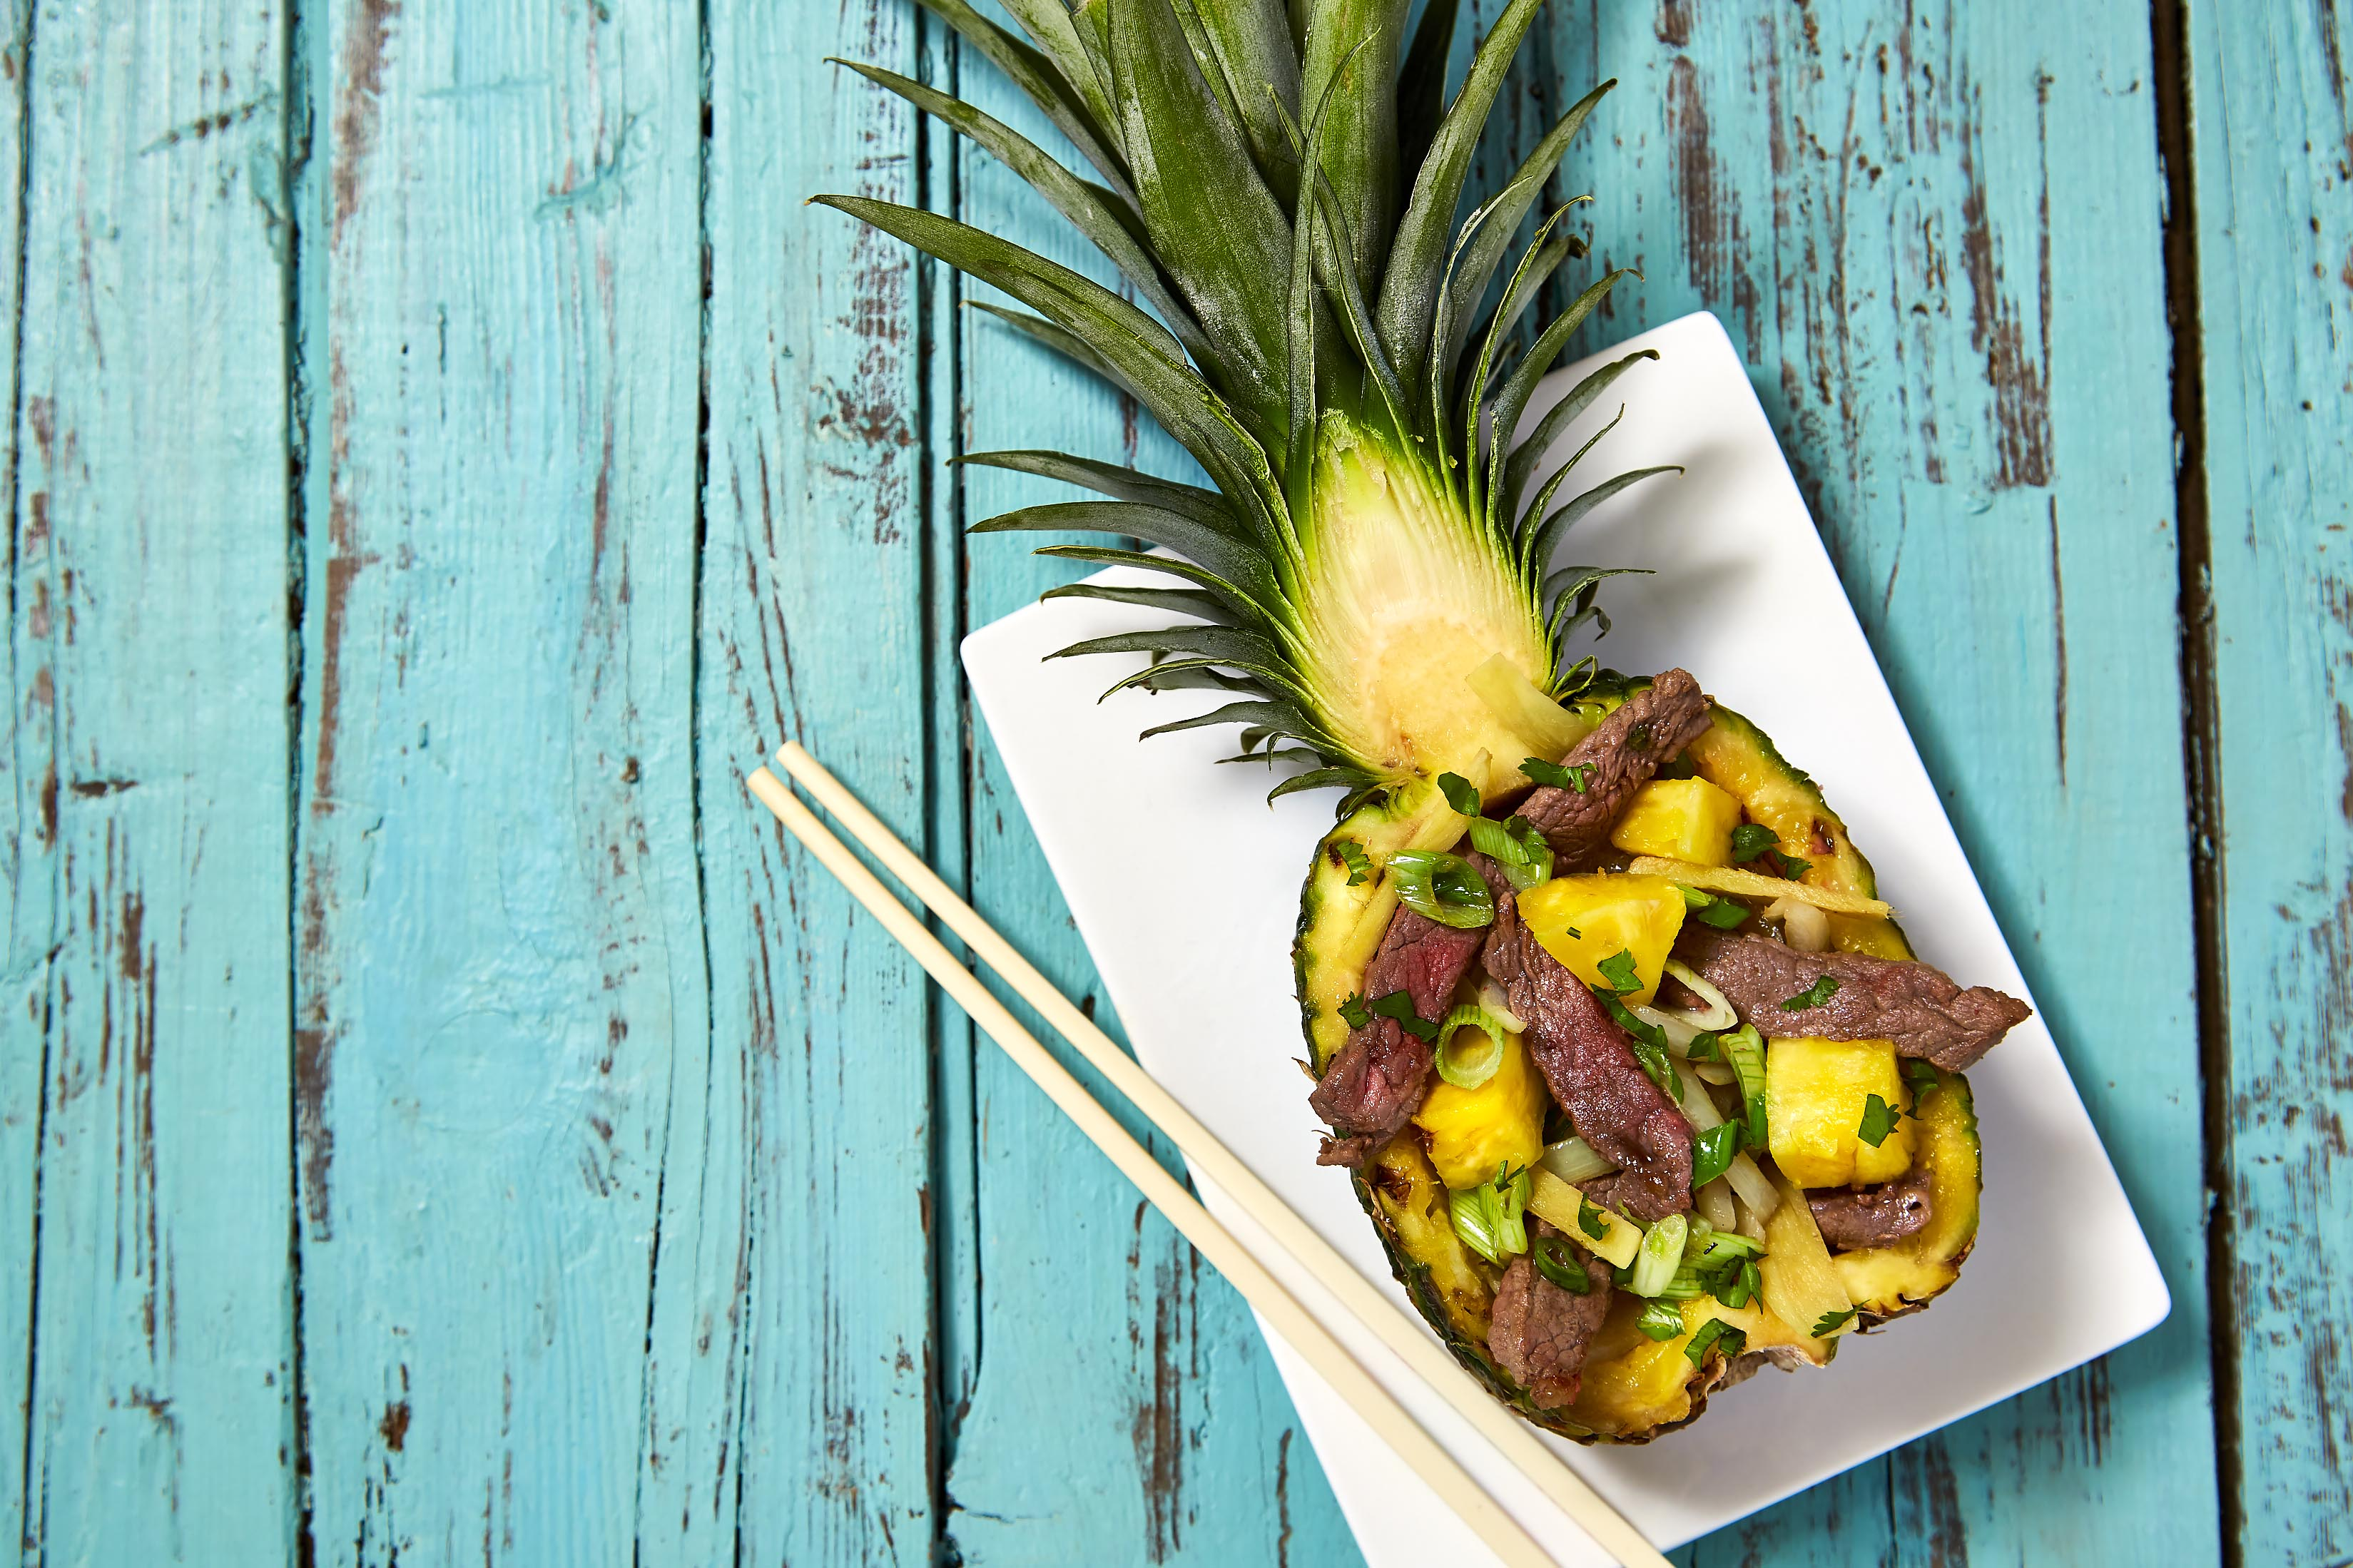 Cross-section of Pineapple with beef strips